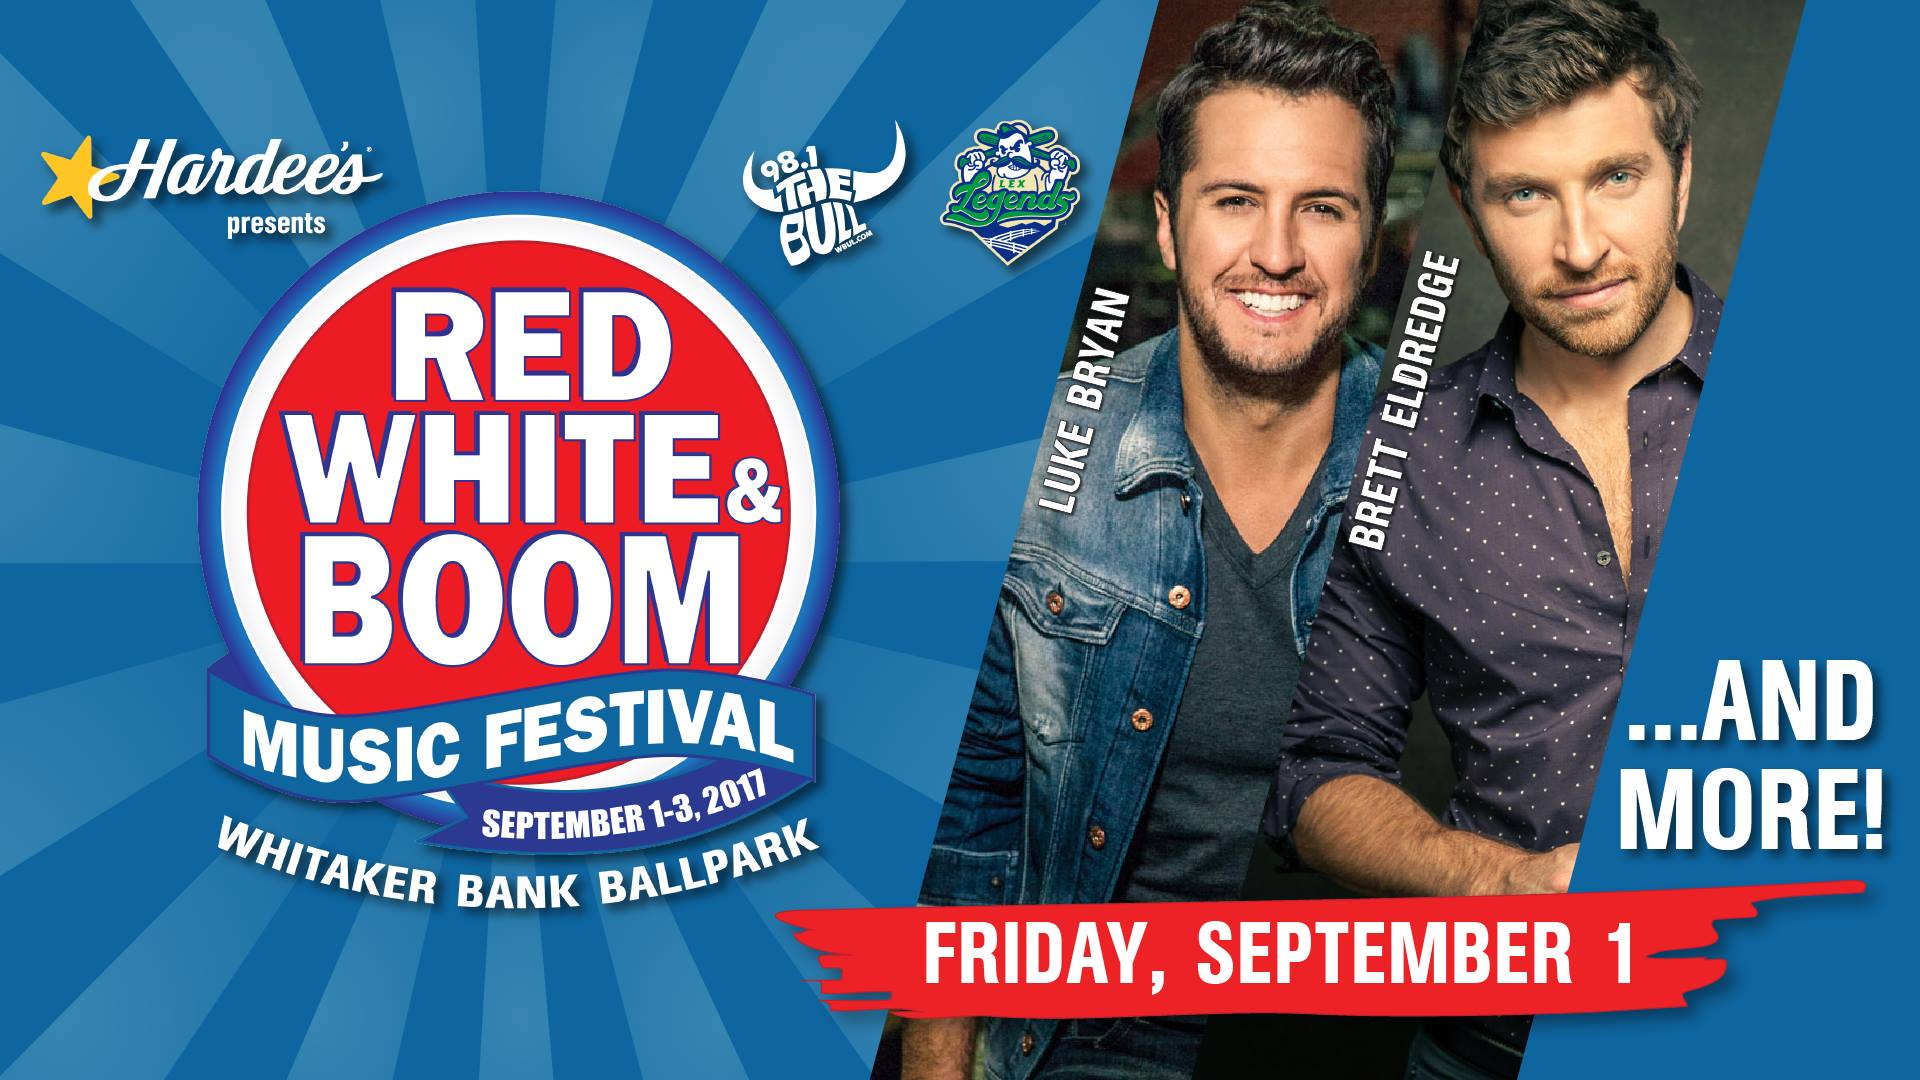 Final lineup for Red White and Boom 2017 includes Luke ... - photo#13